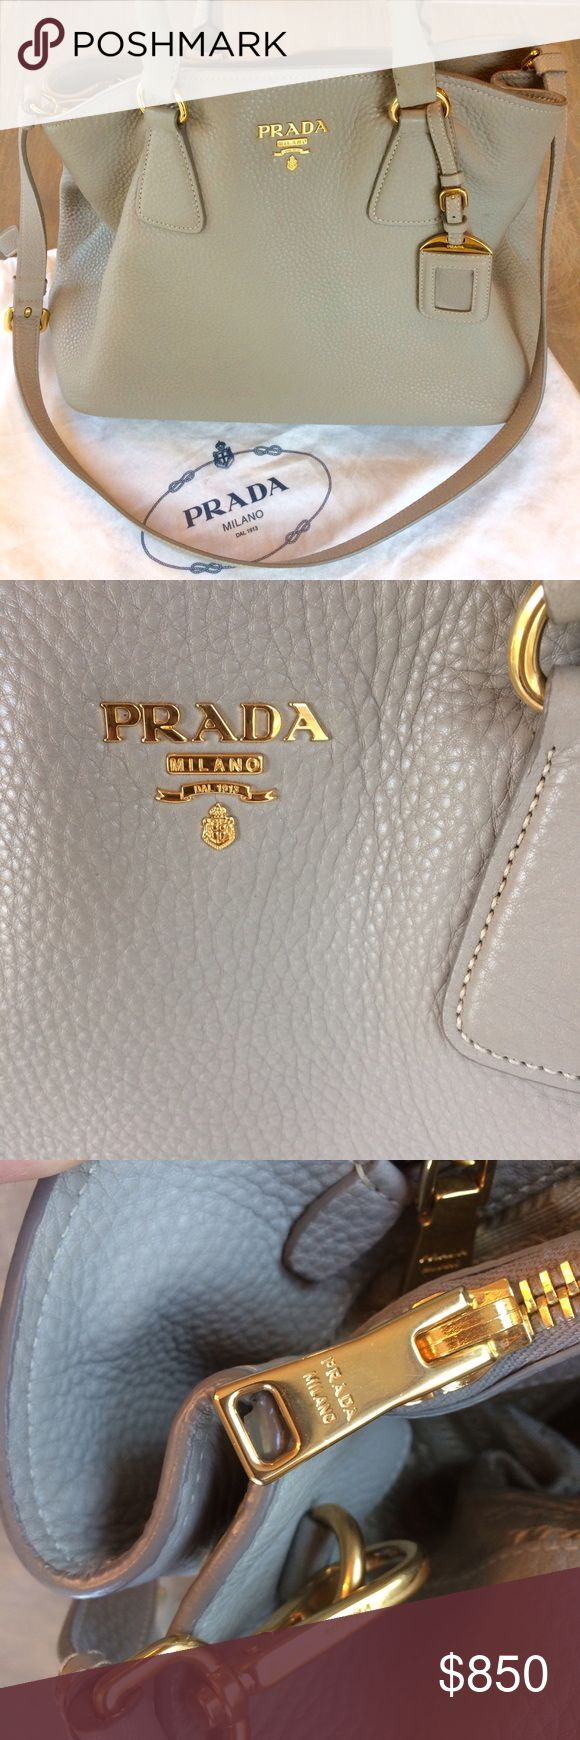 Prada Vitello Daino Purse In beautiful pomice color. Was purchased in 2014 and comes with duster & authenticity cards. Will be also authenticated by the wonderful Poshmark concierge team, so buy with confidence! The bag is in a very good used condition, I have another Prada bag that I always used, so this is well taken care of. Minimal wear on two of the corners but otherwise clean inside and out! Prada Bags